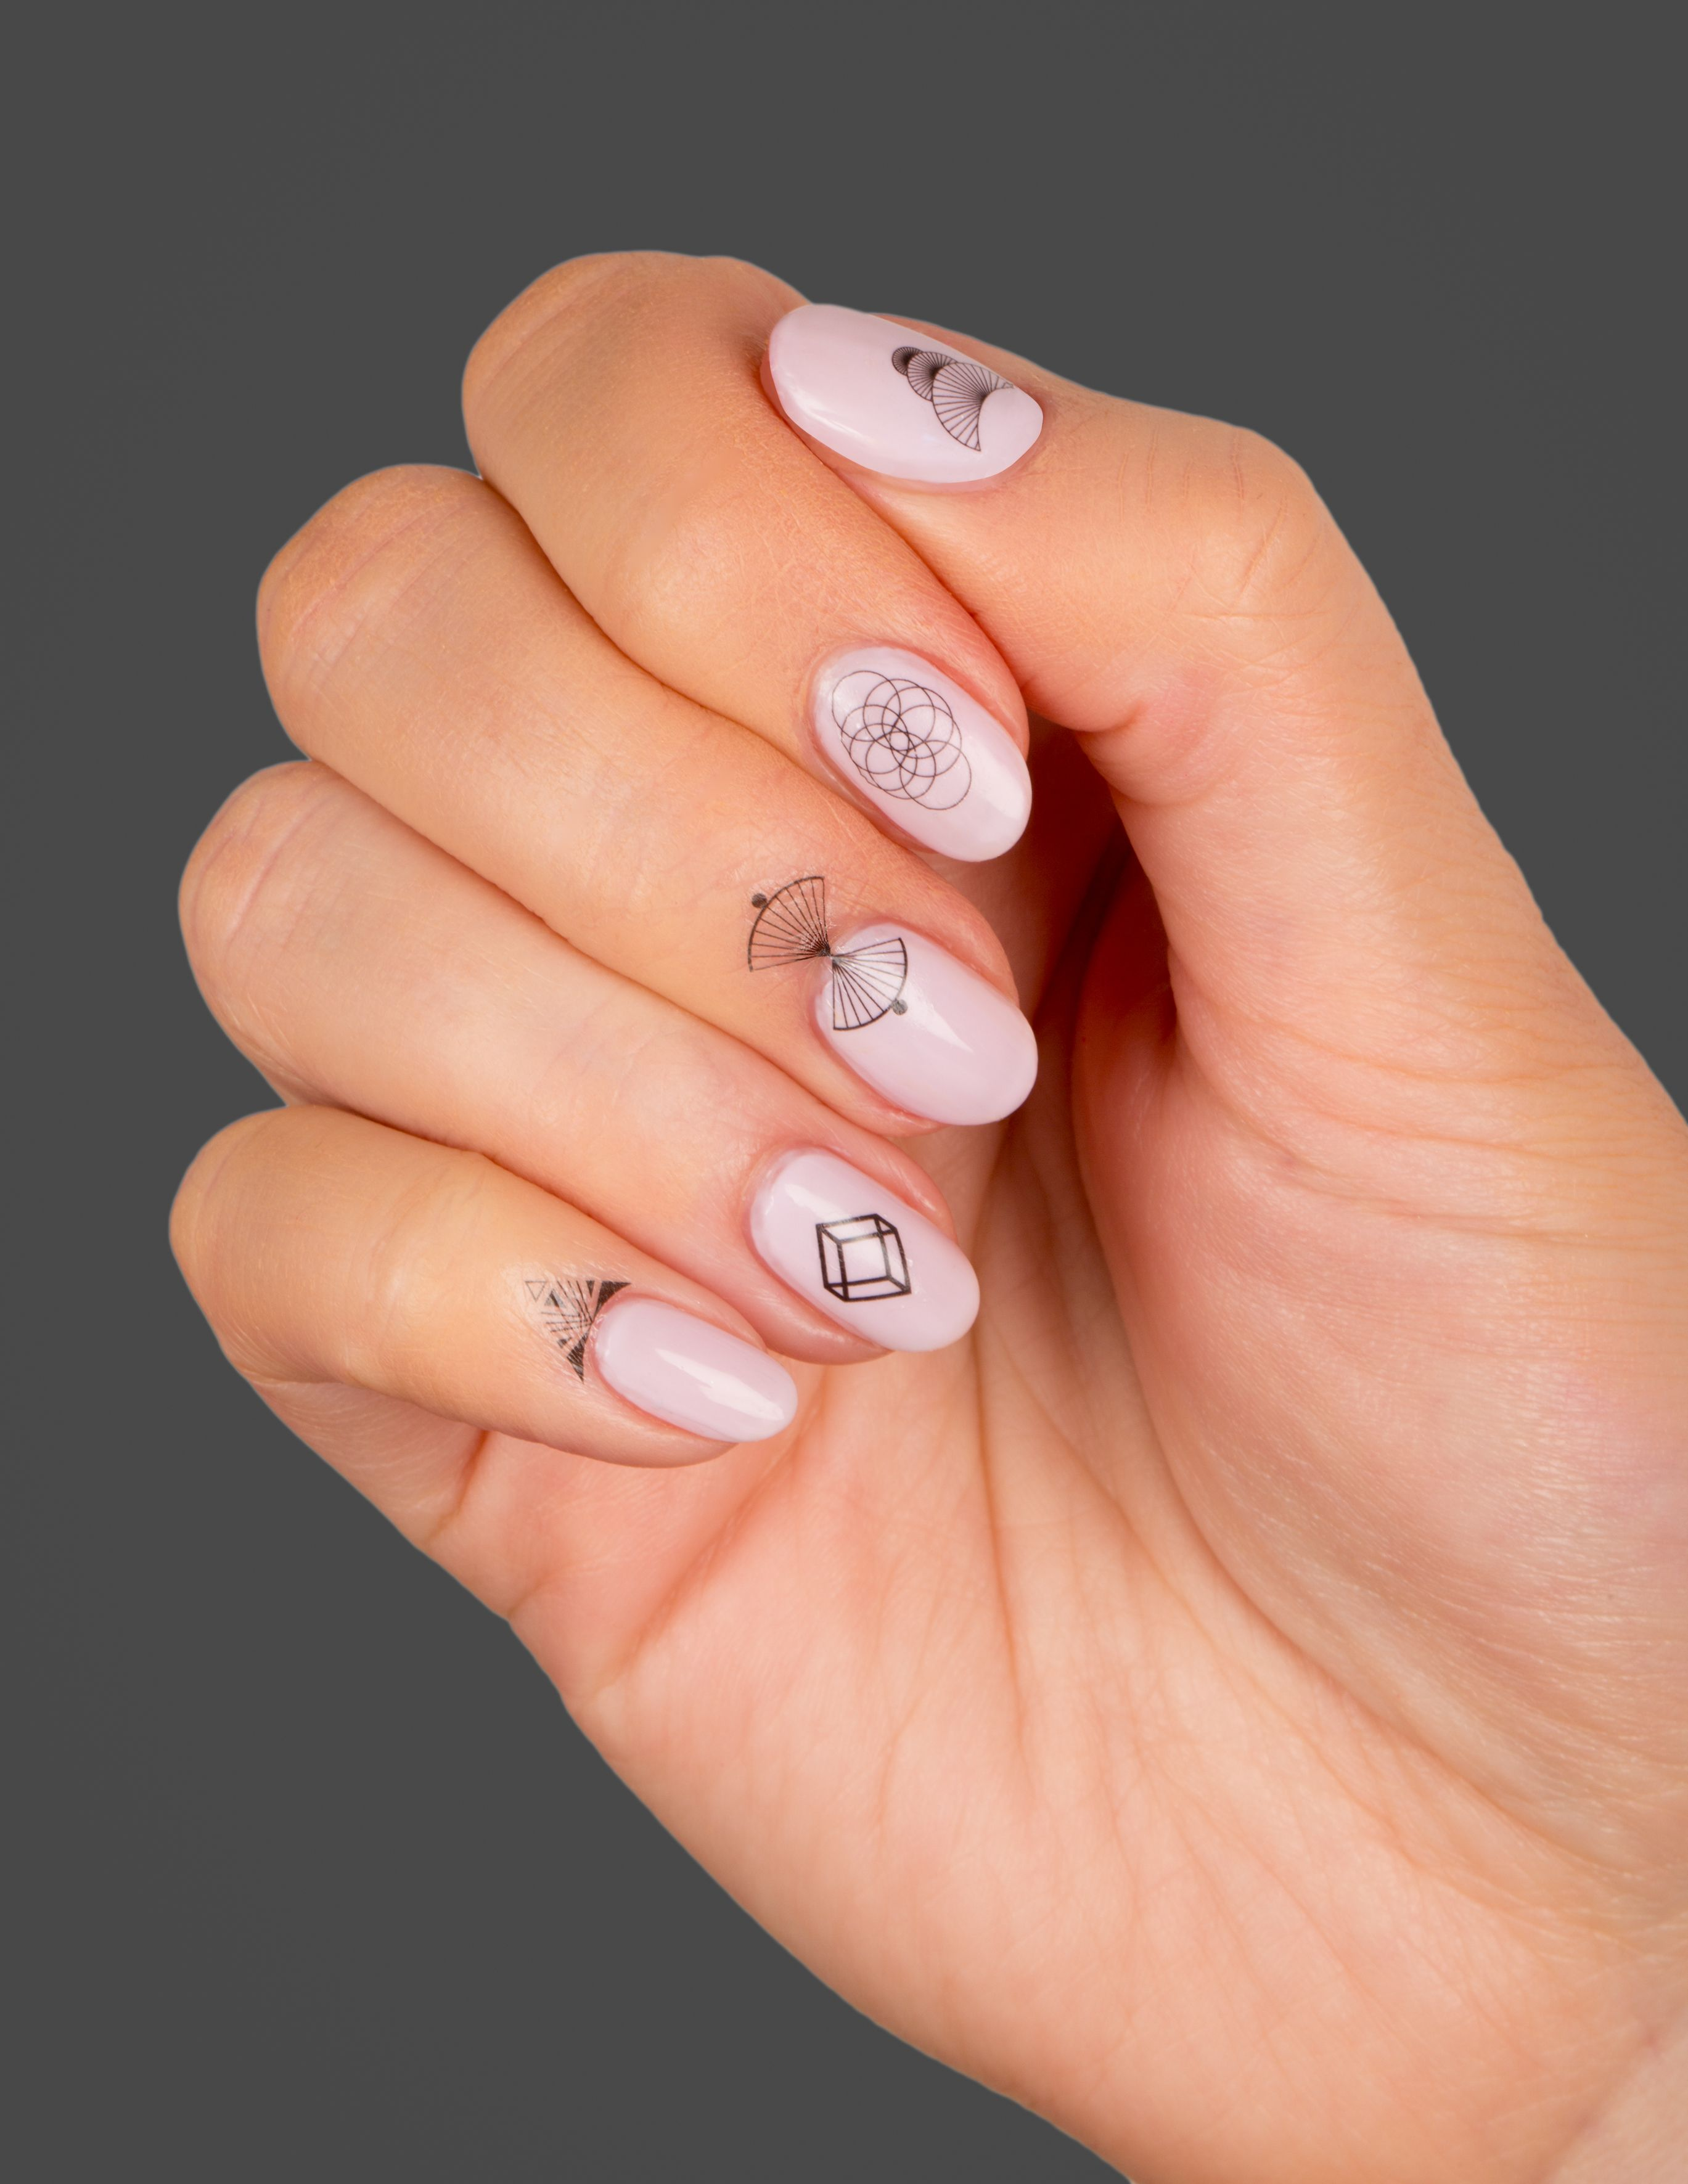 Bourjois Nail and Cuticle Tattoos | Cuticle Tattoos | Pinterest ...